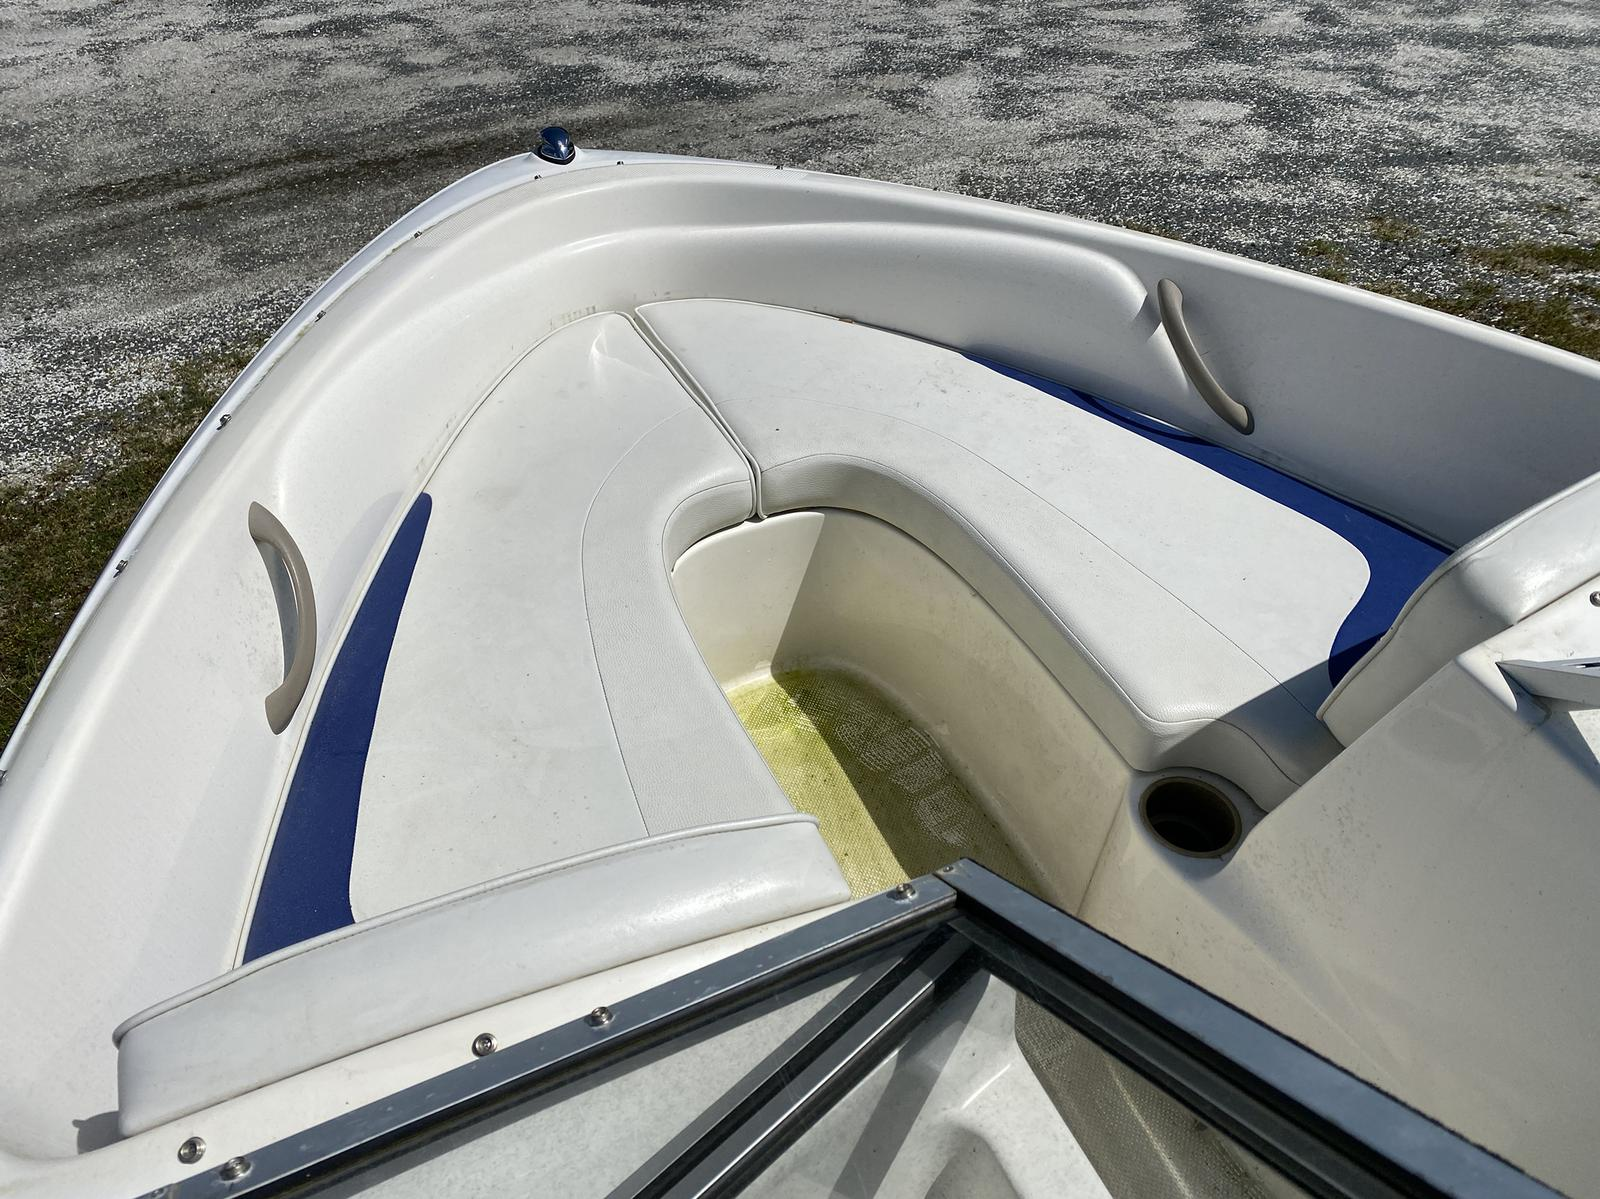 2003 Bayliner boat for sale, model of the boat is 175 Bowrider & Image # 6 of 10